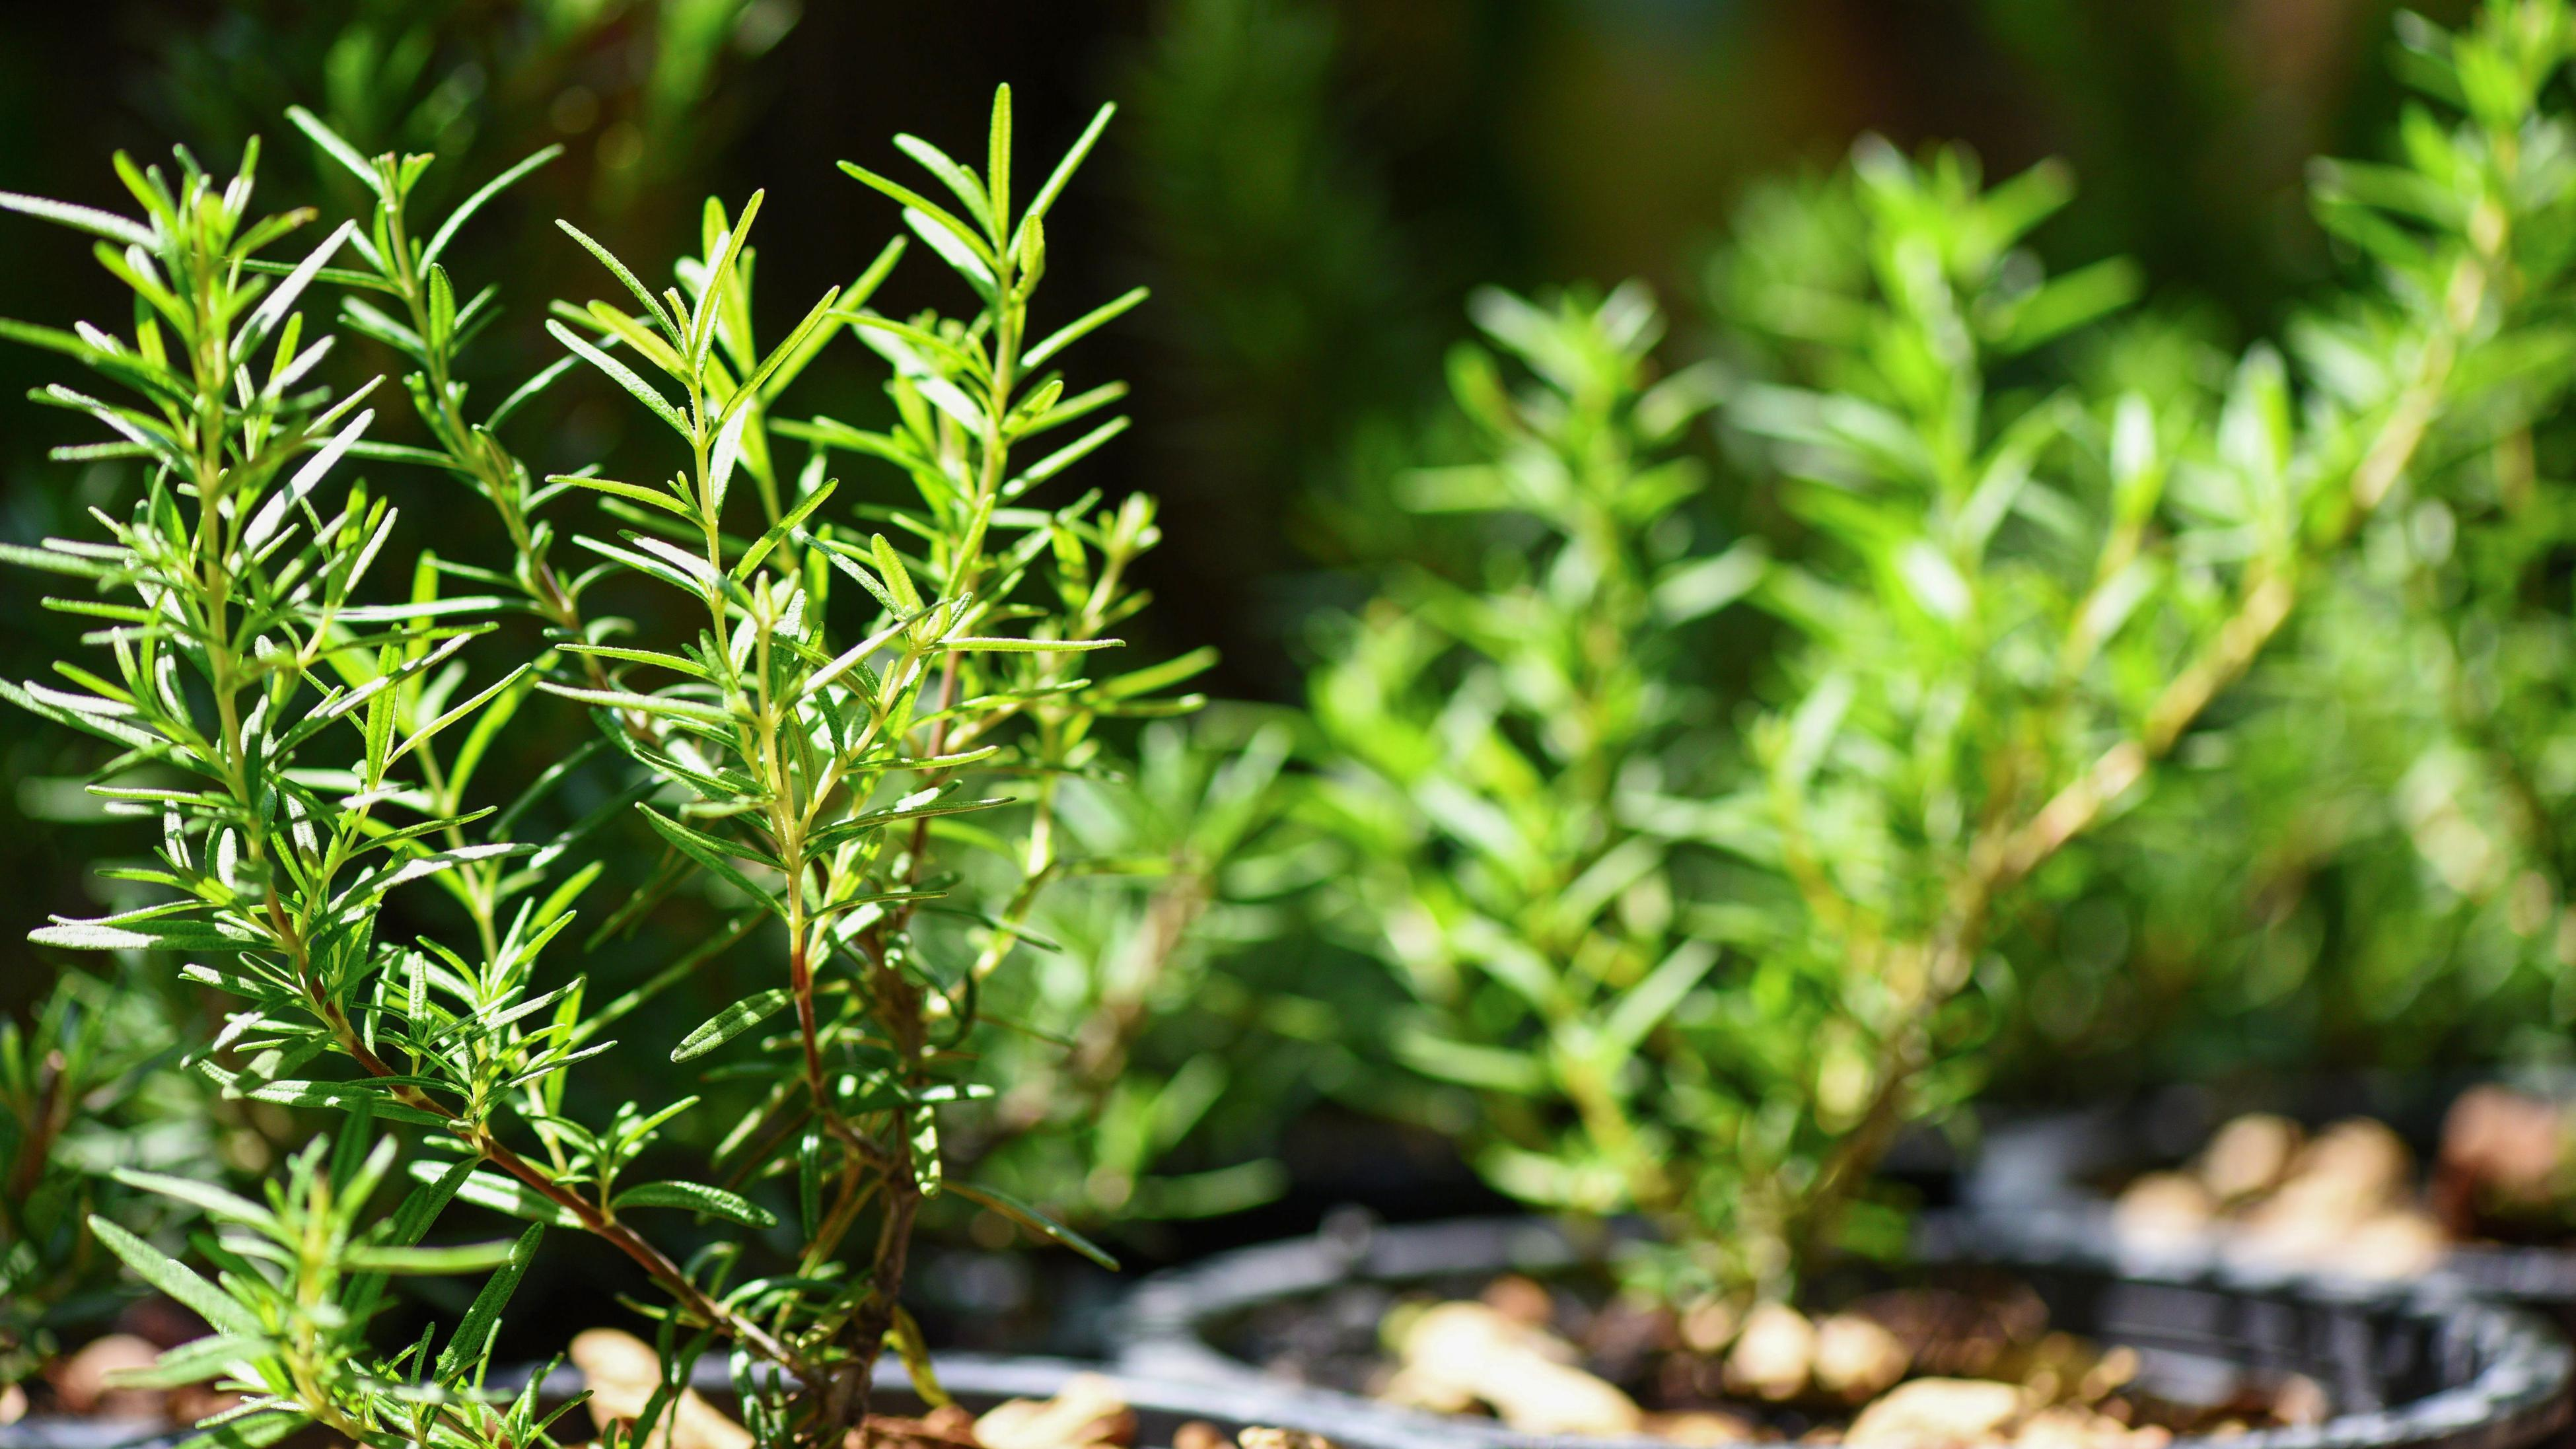 Close up of rosemary growing in a garden